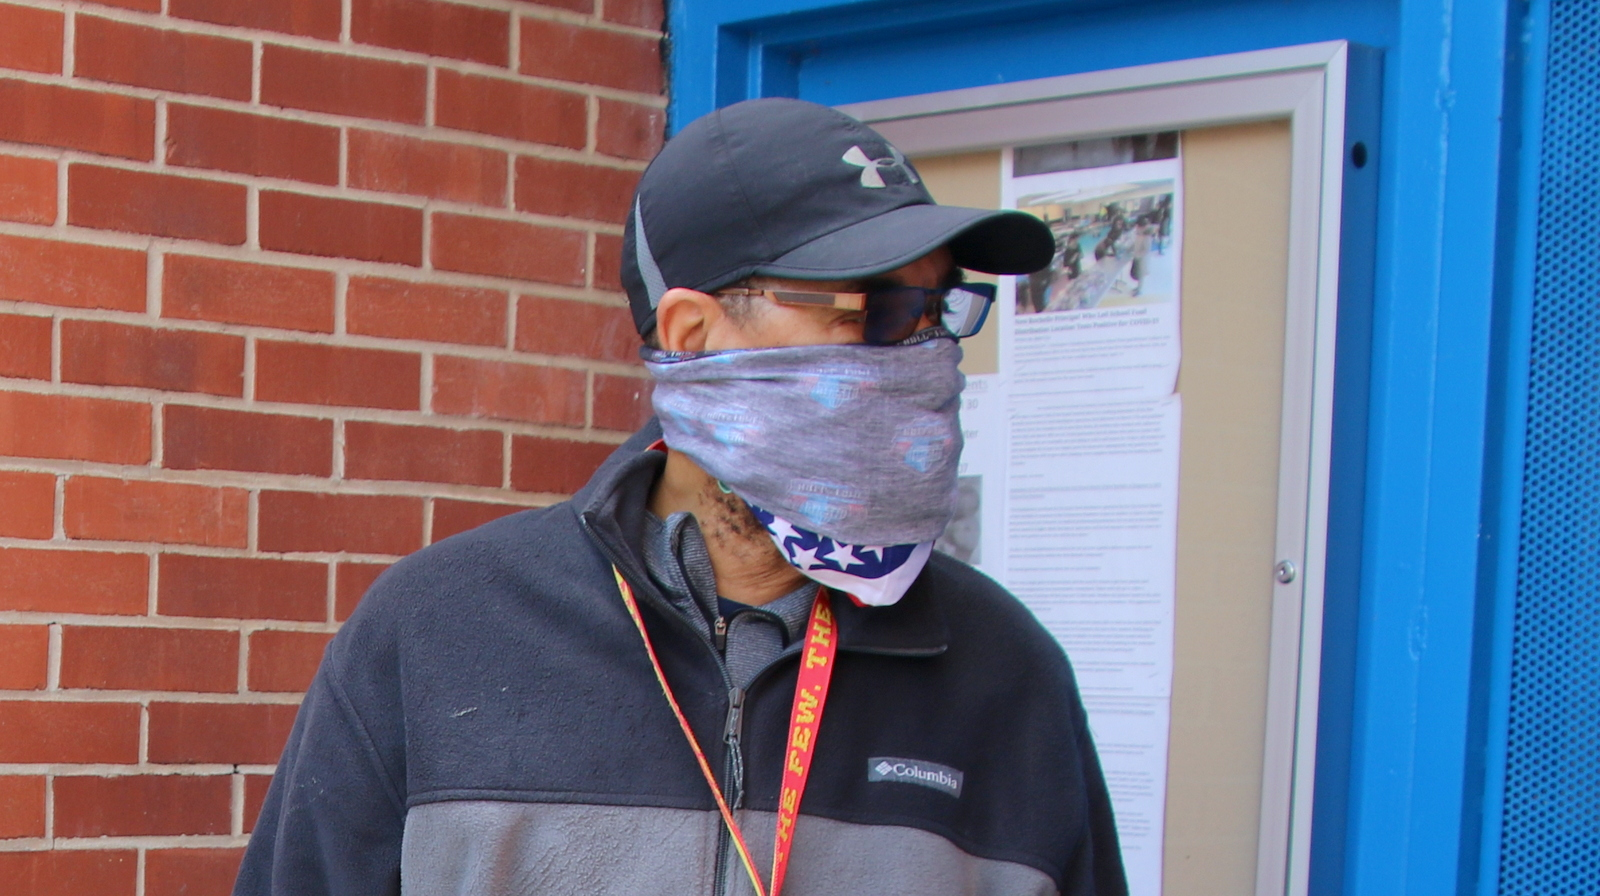 In Northwest Baltimore, a man covers his face with cloth bandanas. (Louis Krauss)